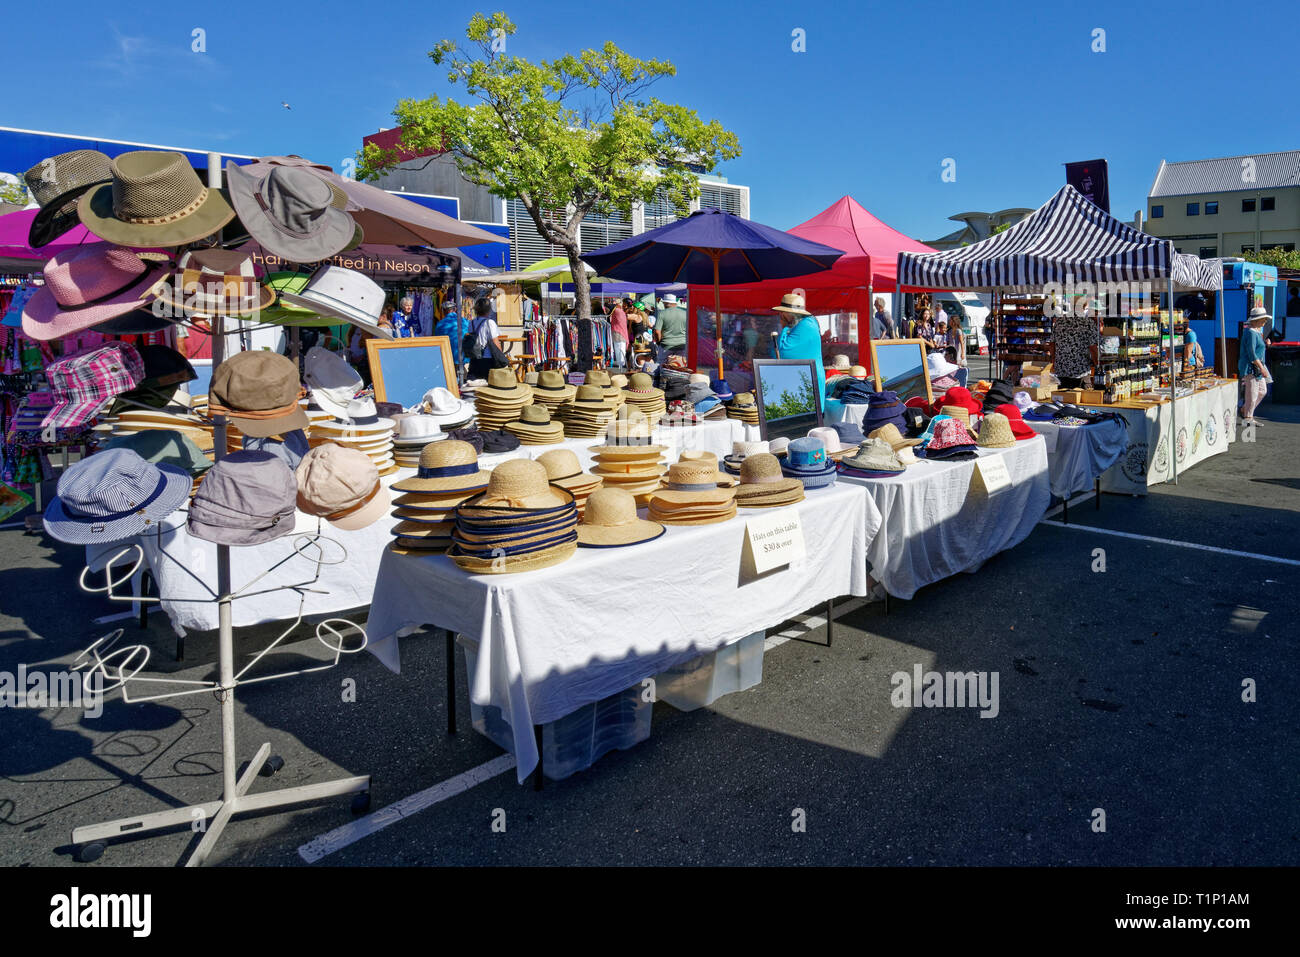 Stacks of straw hats on a Nelson market stall on a sunny day. Nelson, New Zealand. - Stock Image